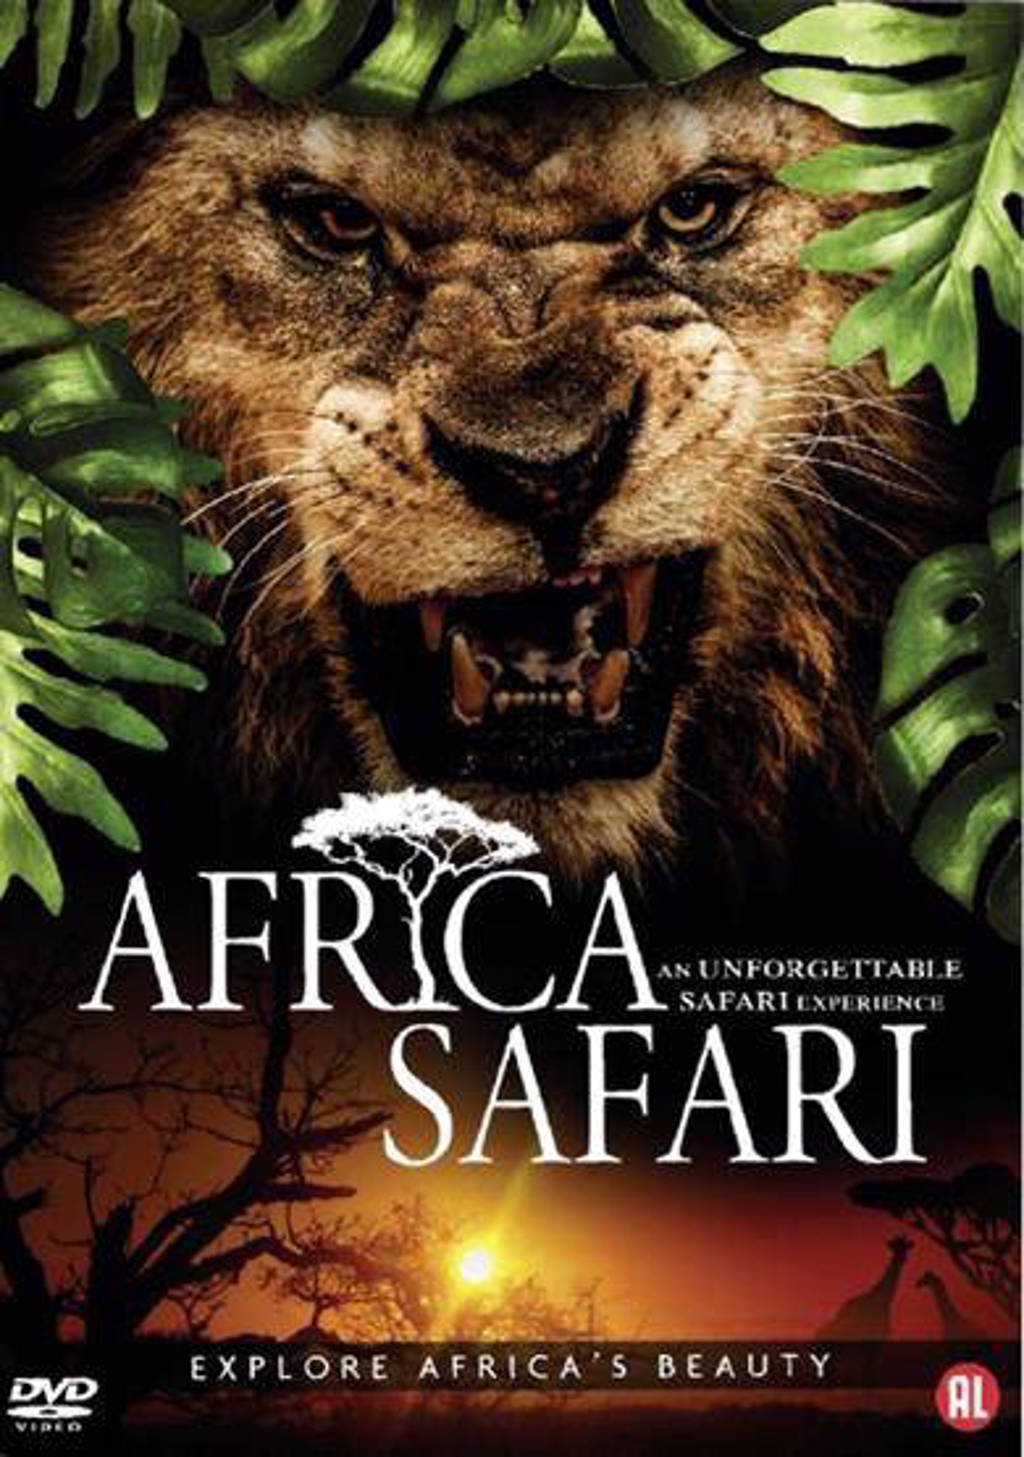 Africa safari (DVD)